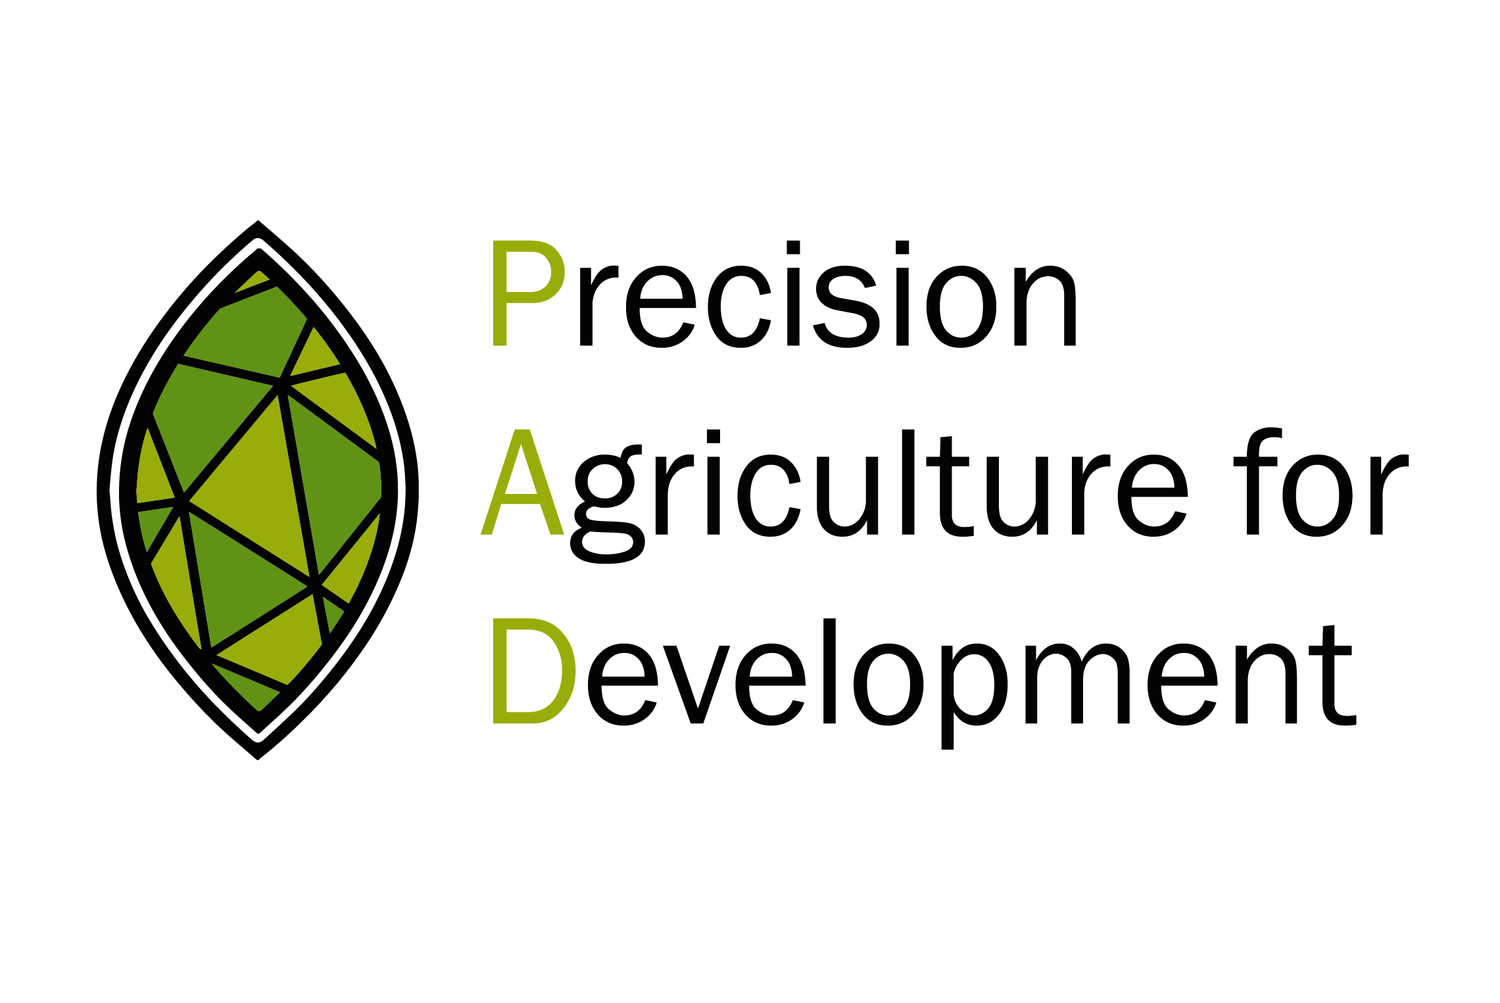 Precision Agriculture for Development